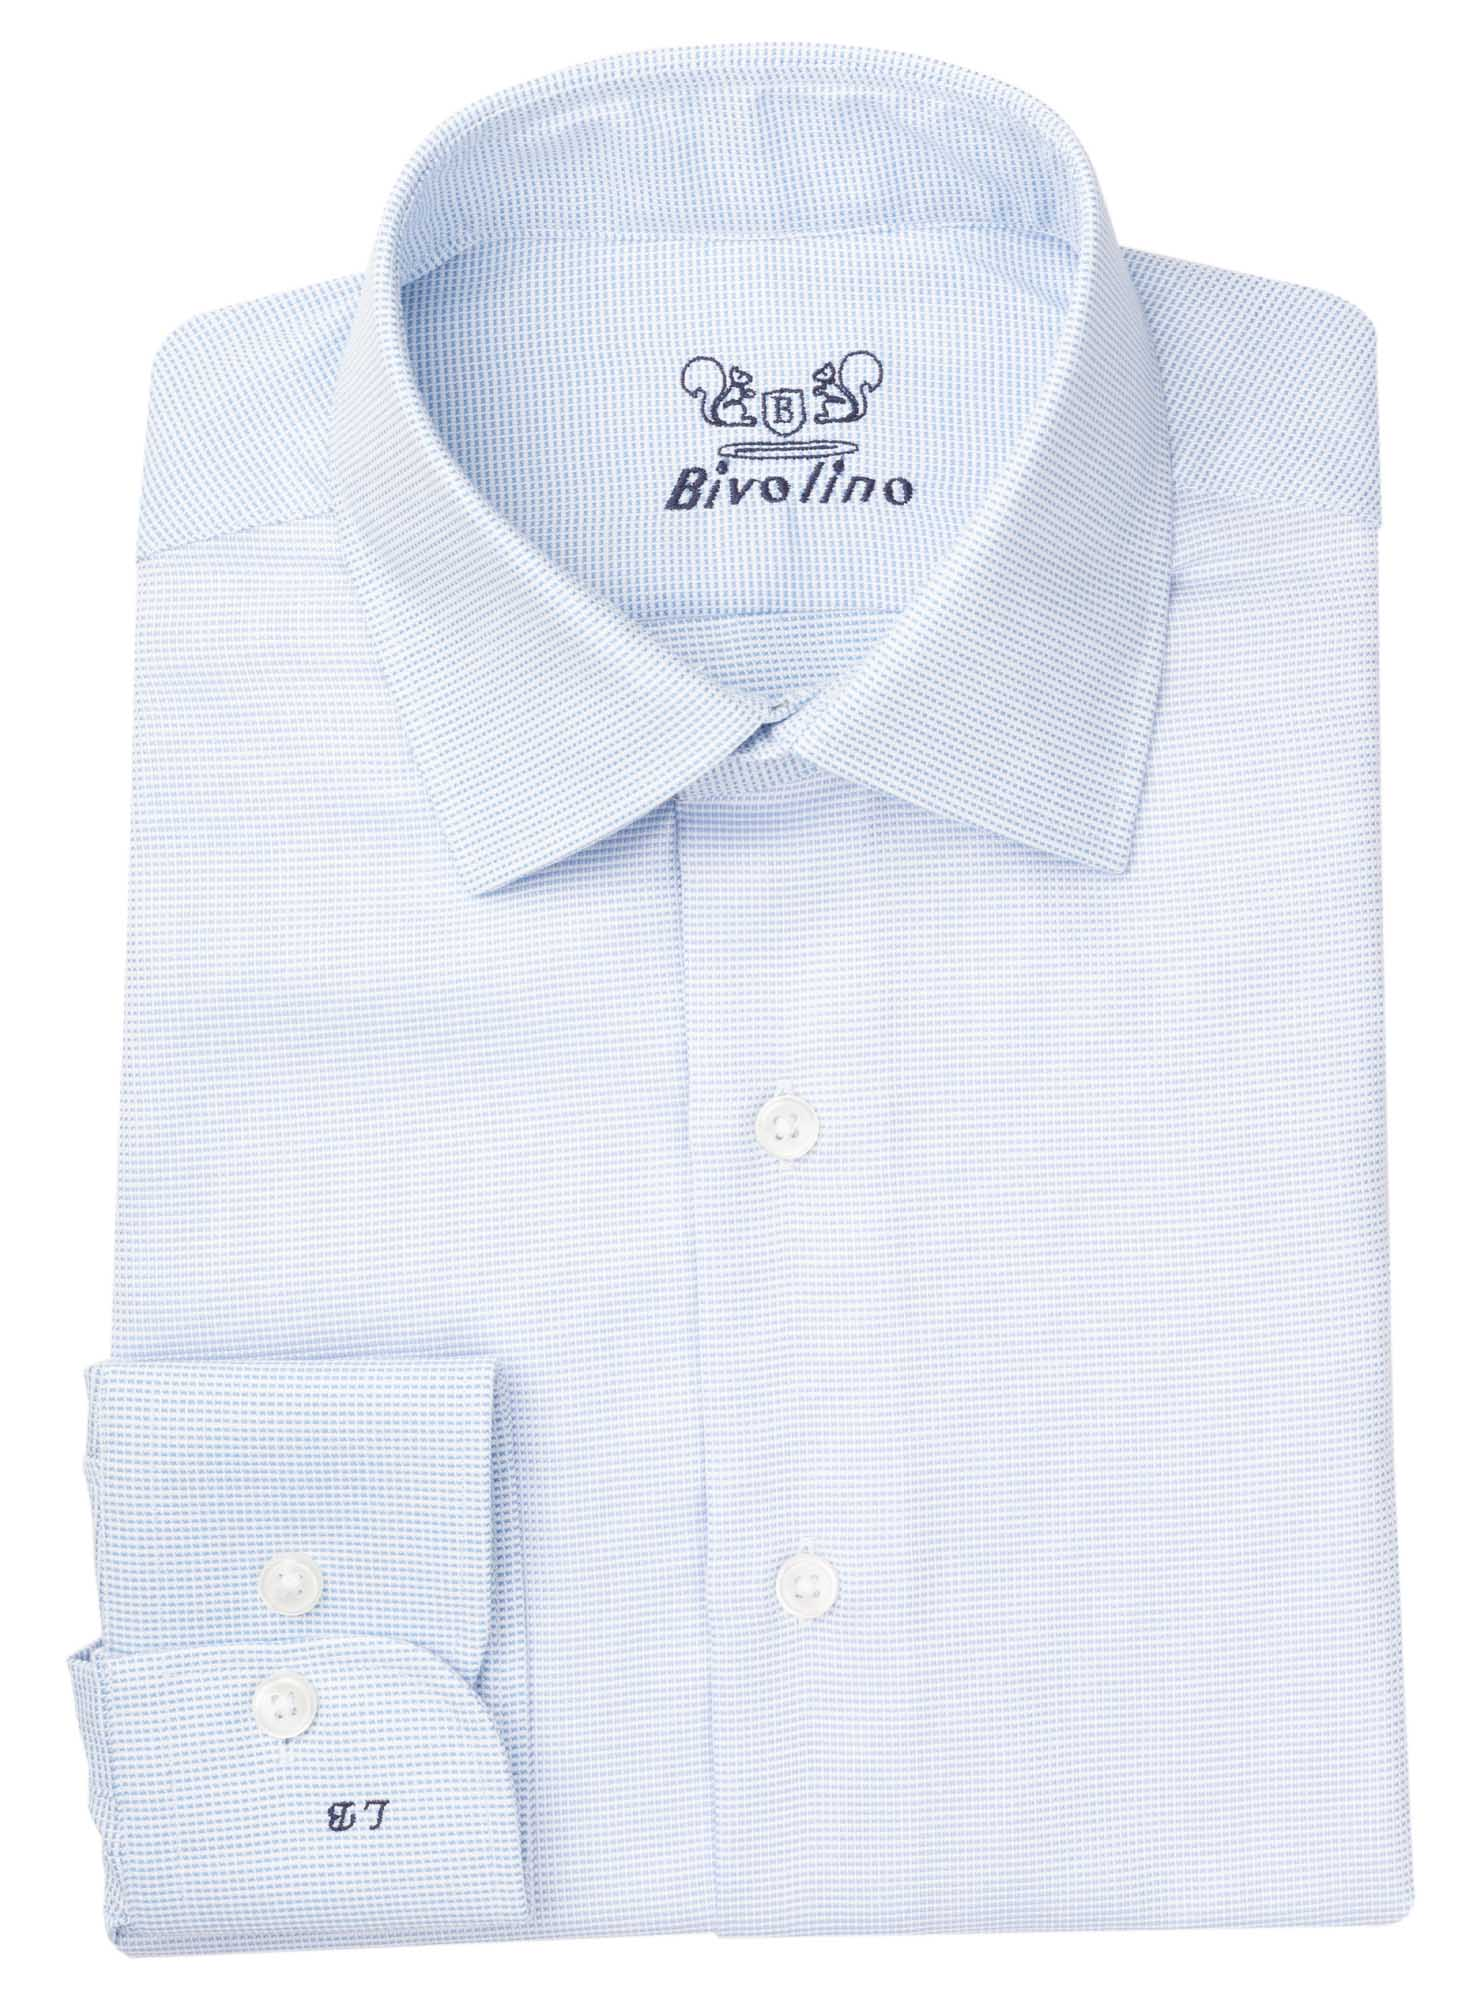 MESSINA - chemise homme coton oxford - ROYAL PANAMA 1